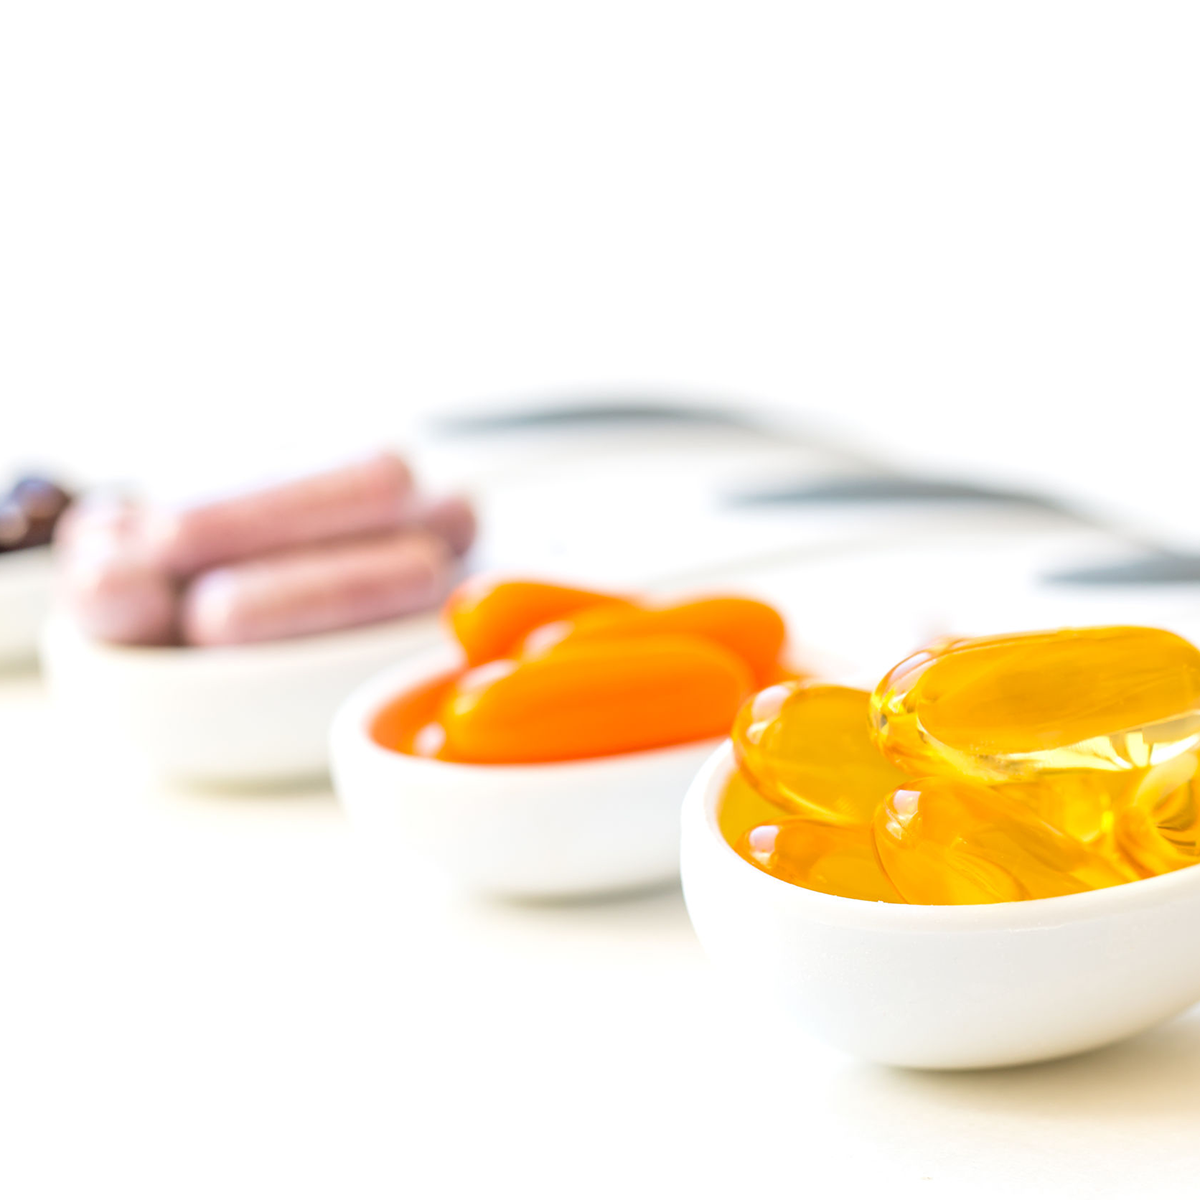 Fat-Soluble Vitamins After Bariatric Surgery